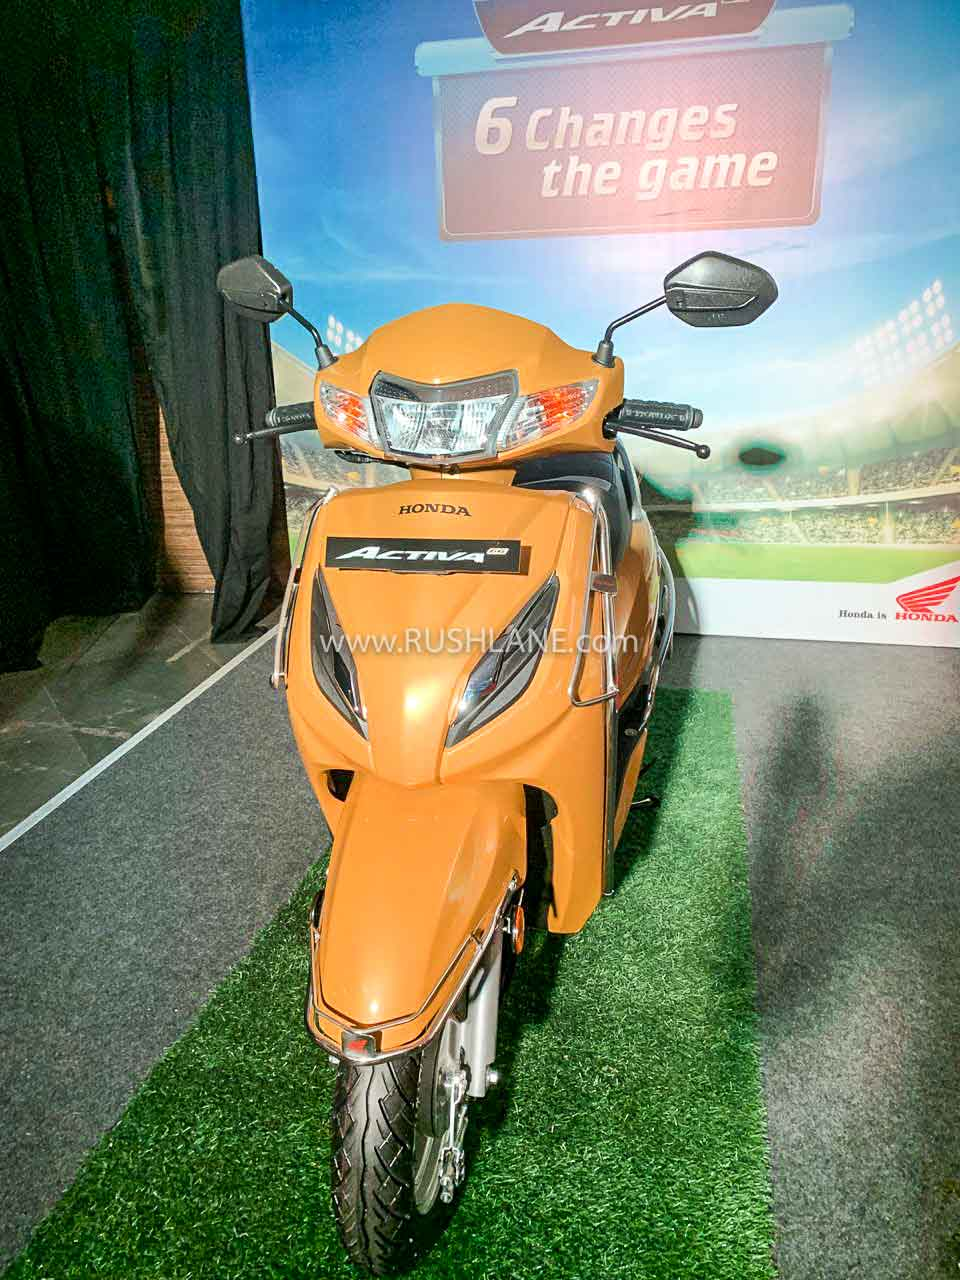 New Honda Motorcycles >> Honda Activa 6G BS6 scooter launch price Rs 64k - Gets 6 ...